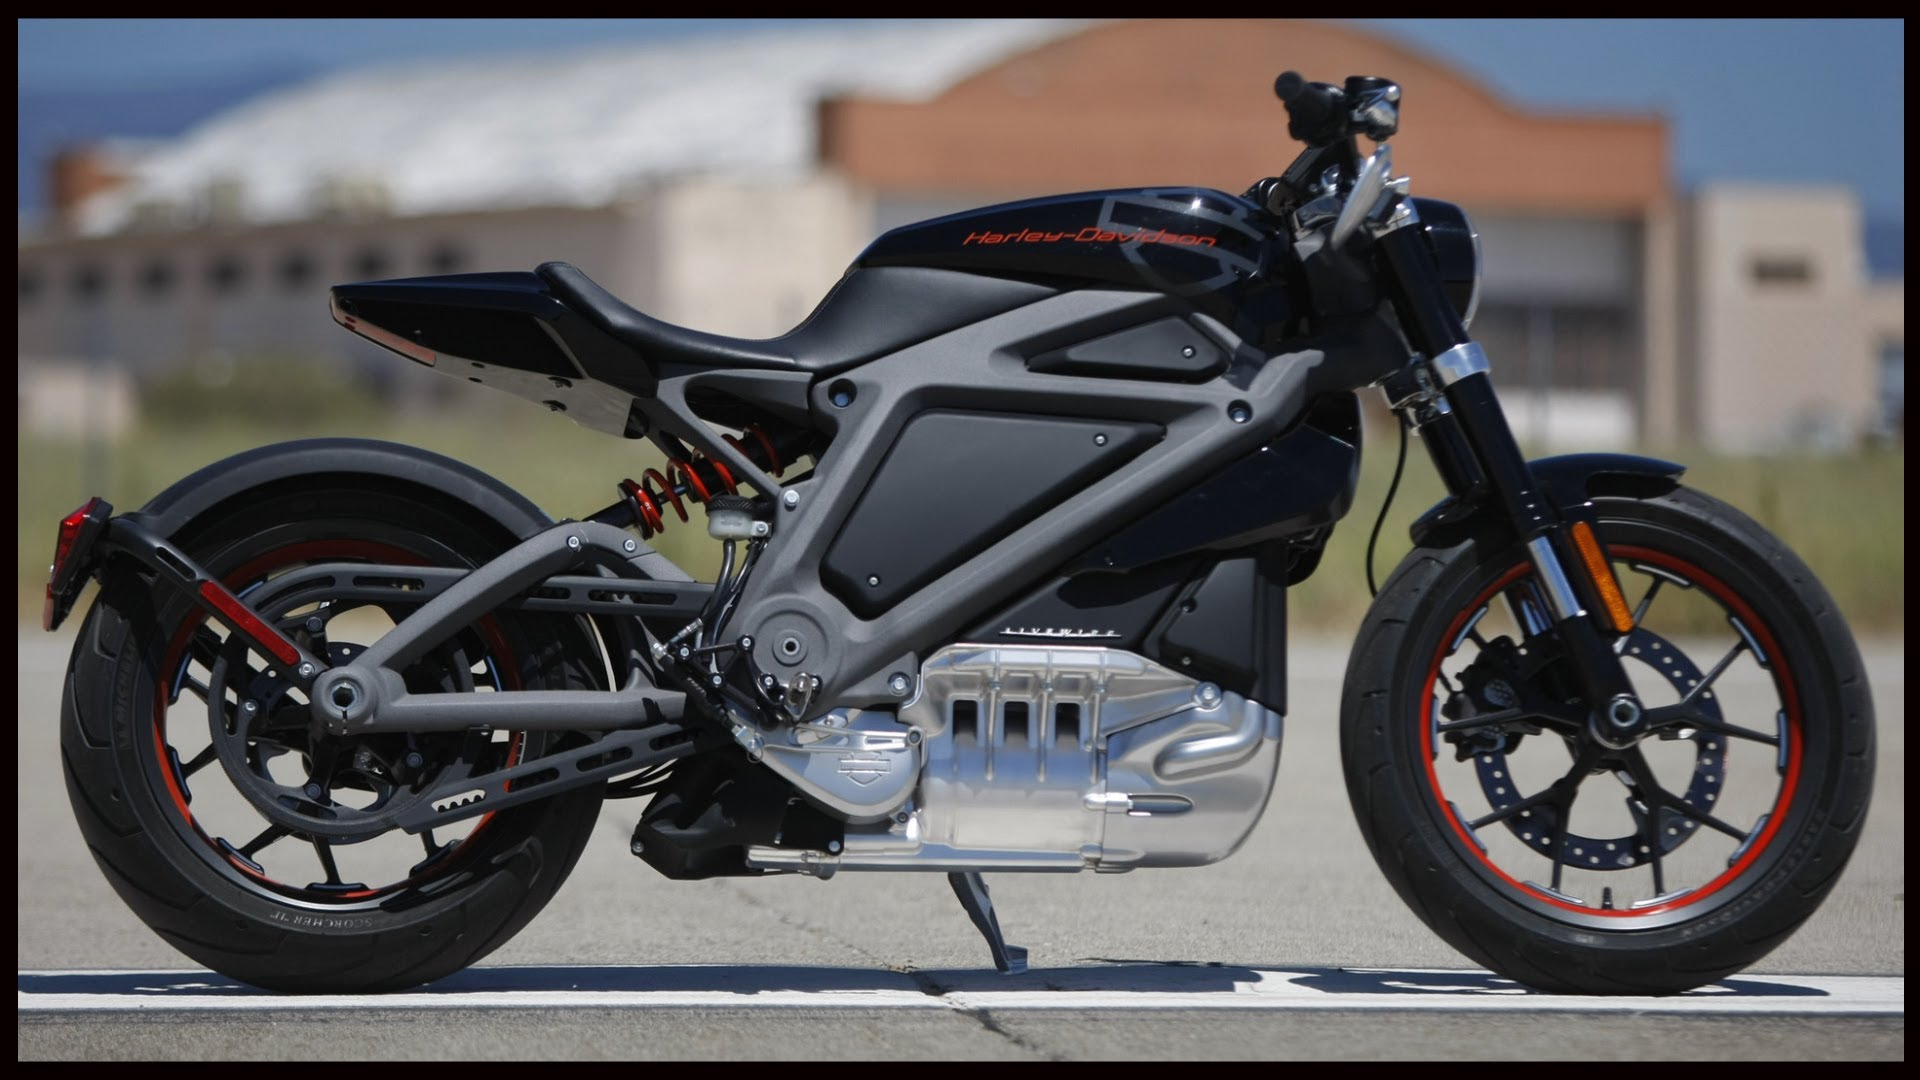 Attracting new riders: How the motorcycle industry is surviving